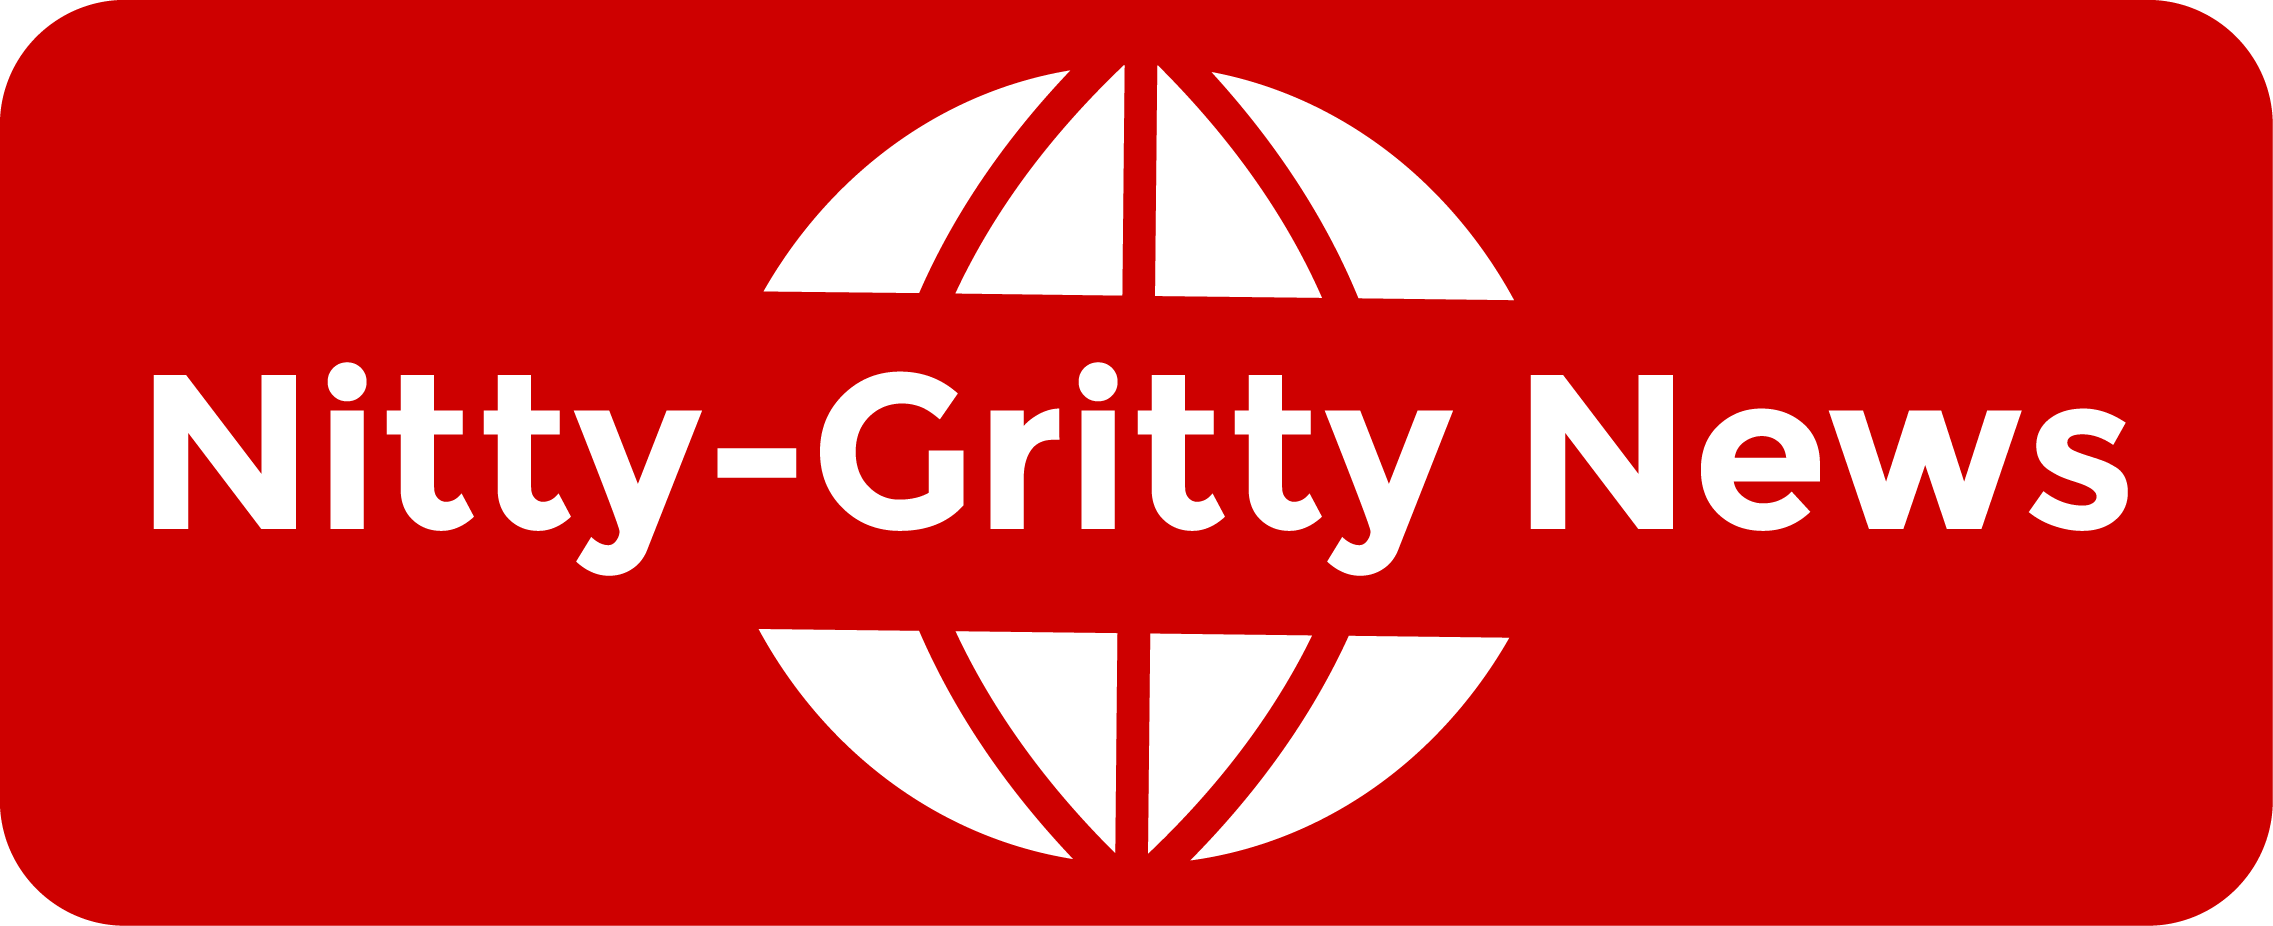 Nitty-Gritty News